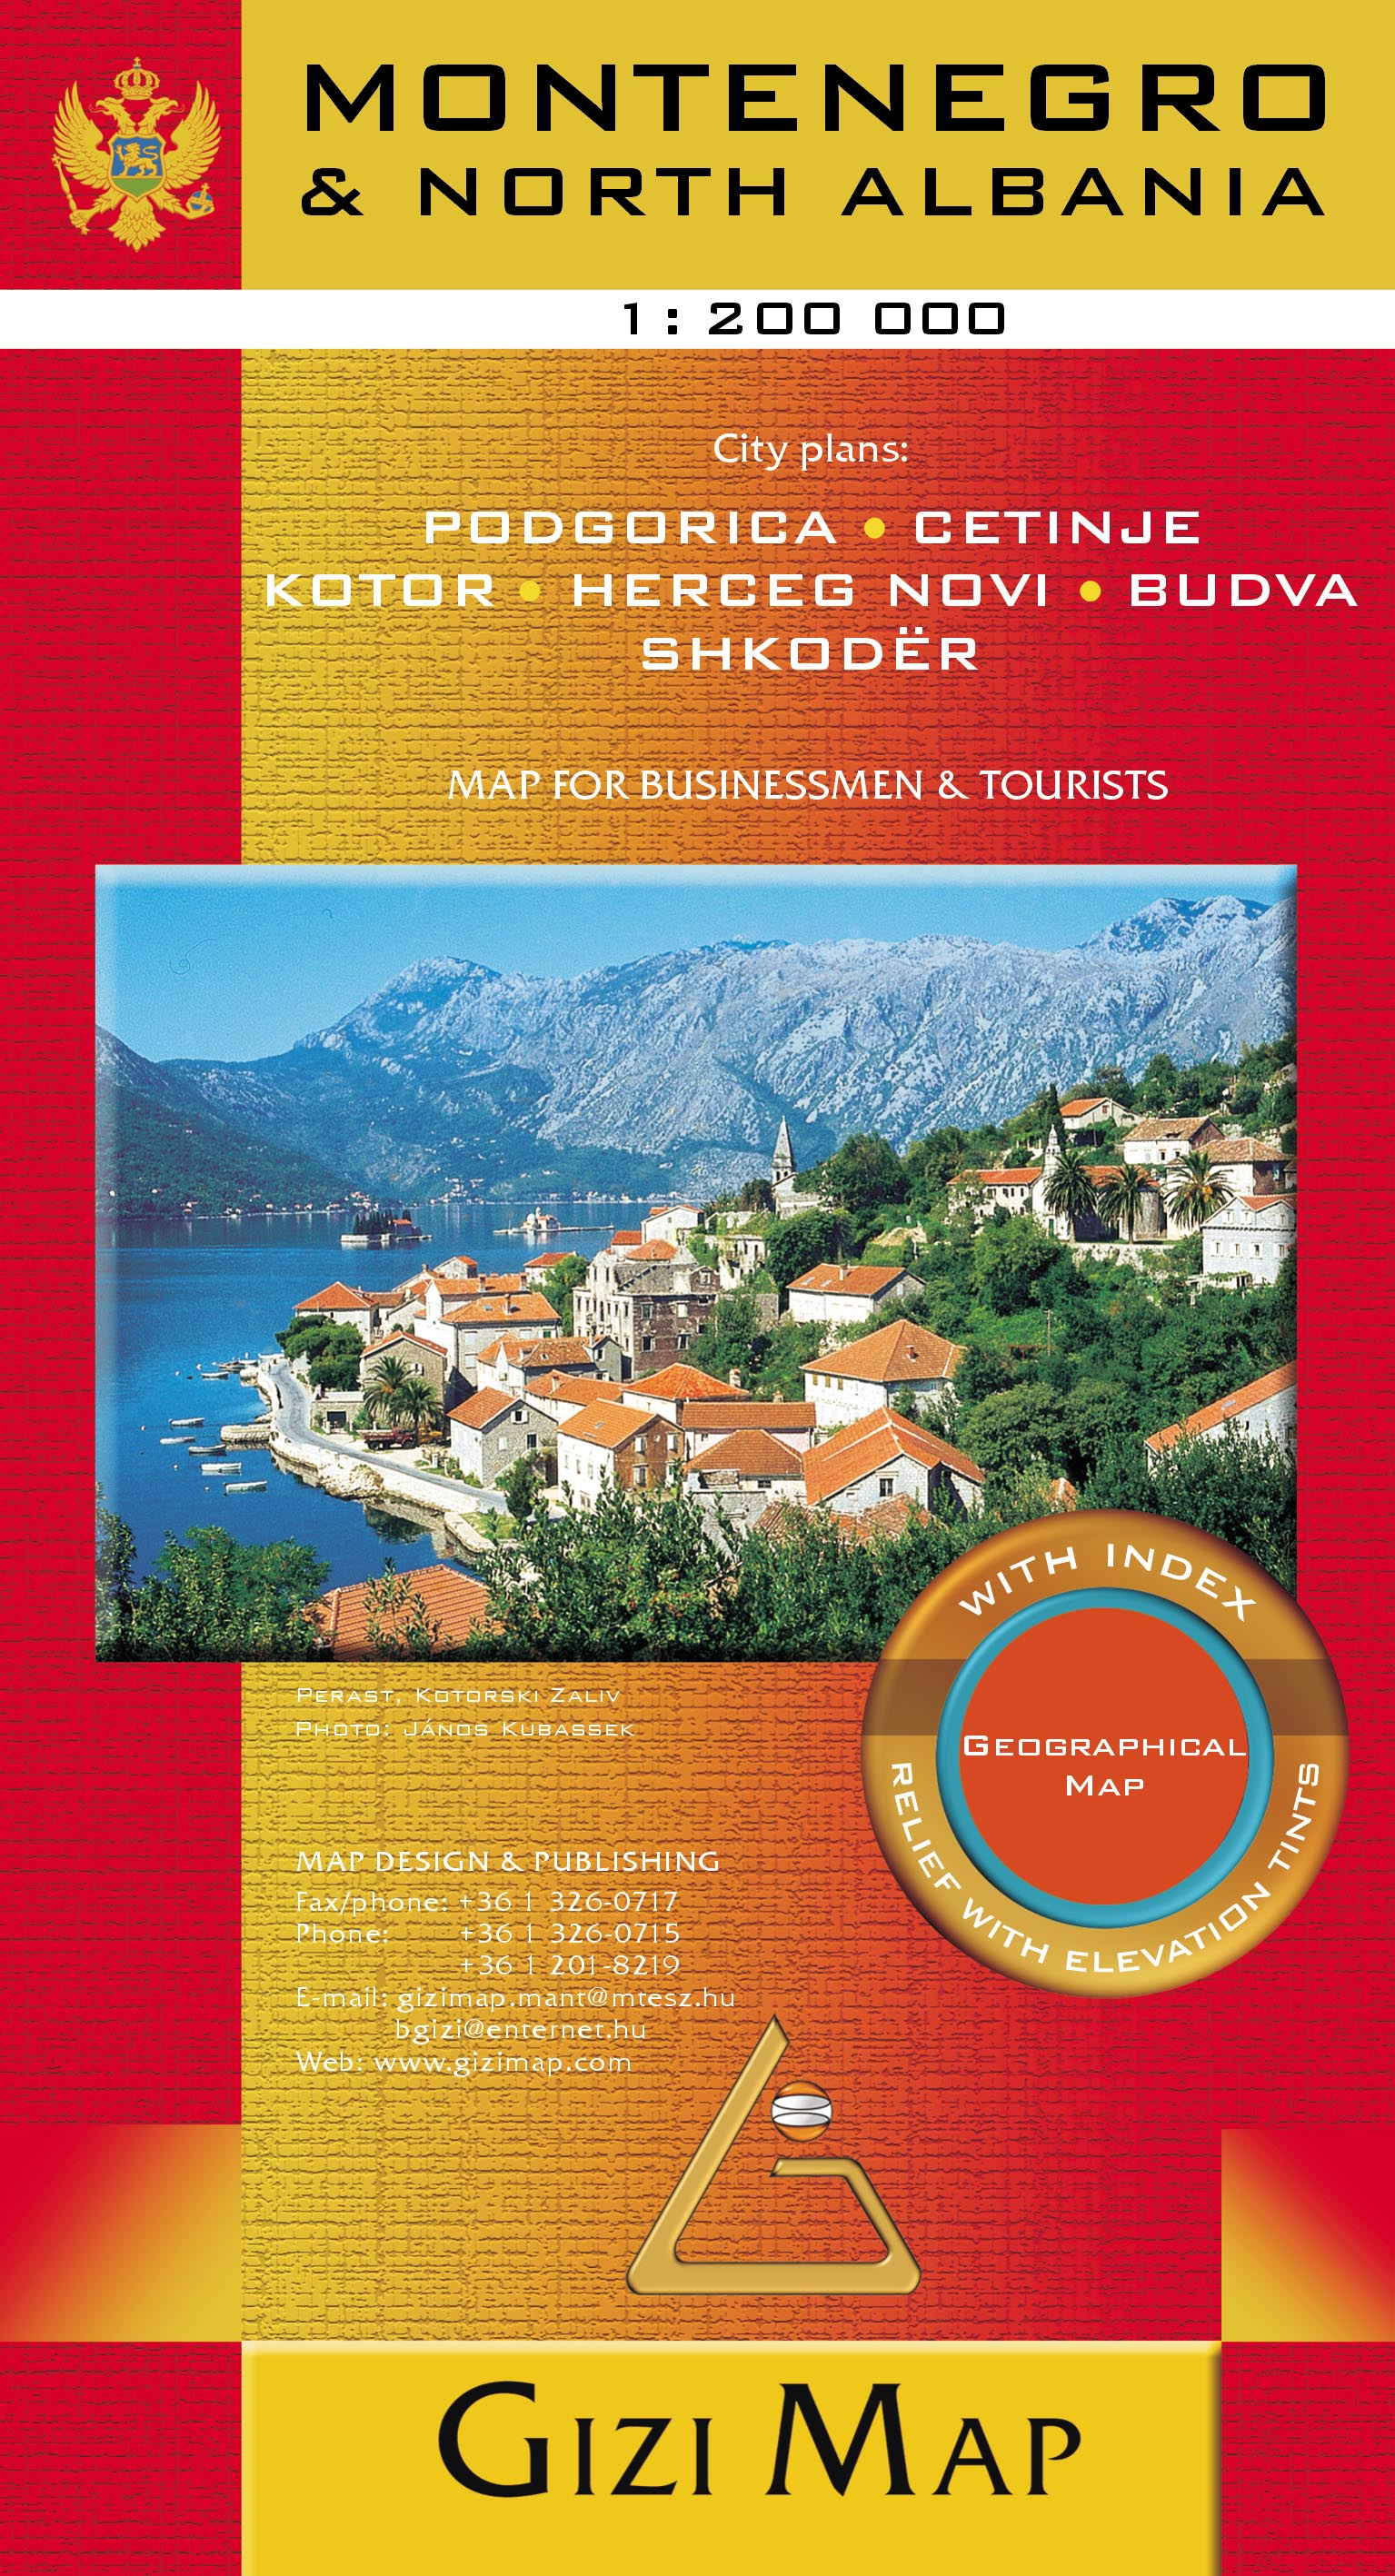 Gizimap series for Businessmen and tourists with detailed index of place names and legend in 8 languages. Inset city maps: Podgorica, Budva, Cetinje, Kotor, Herceg Novi, Shkoder